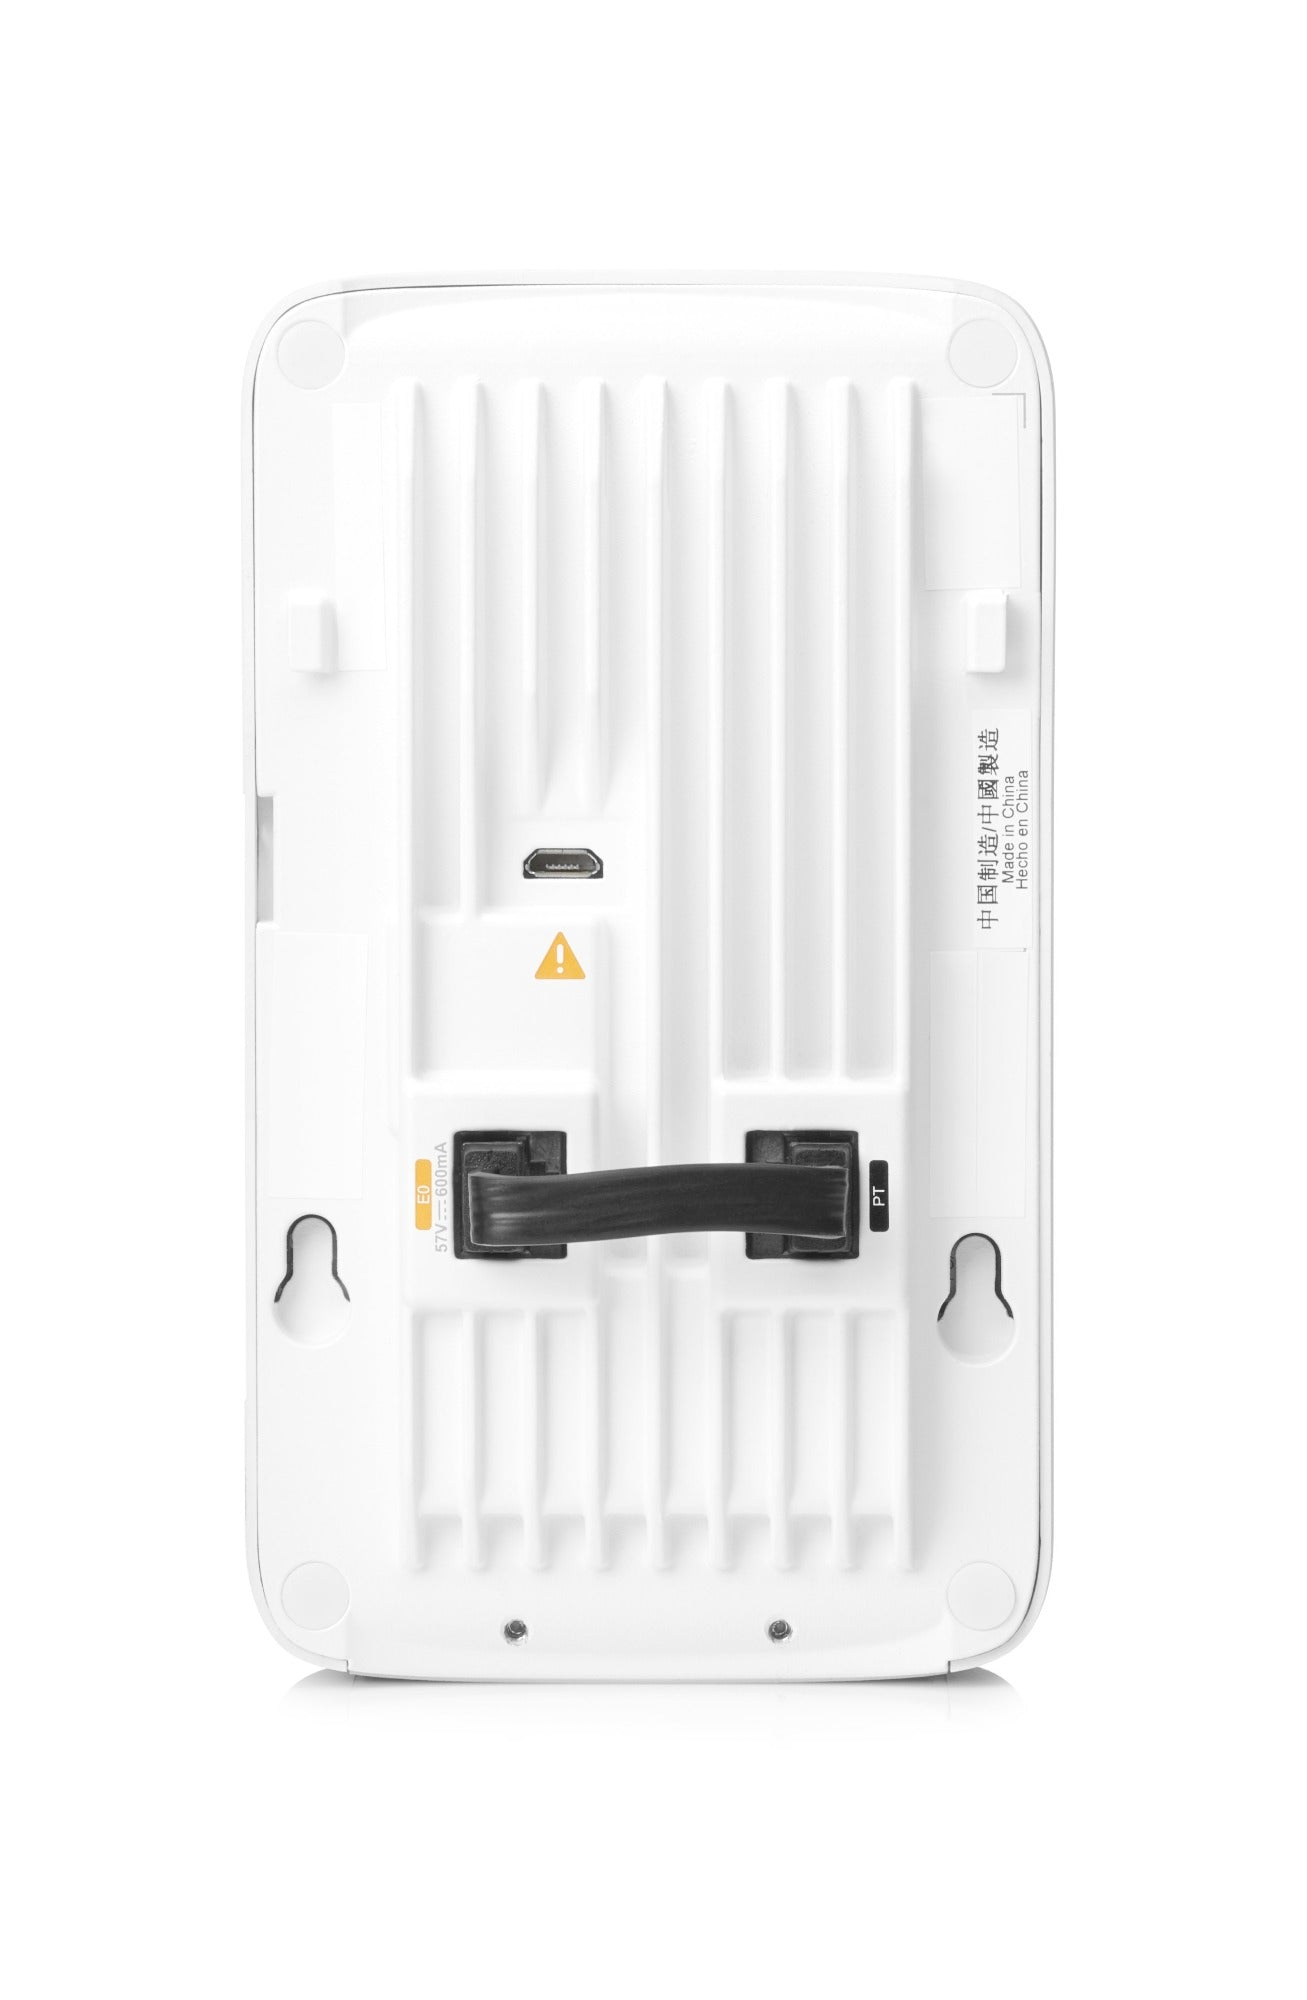 Wireless Access Point | Aruba Instant On AP11D